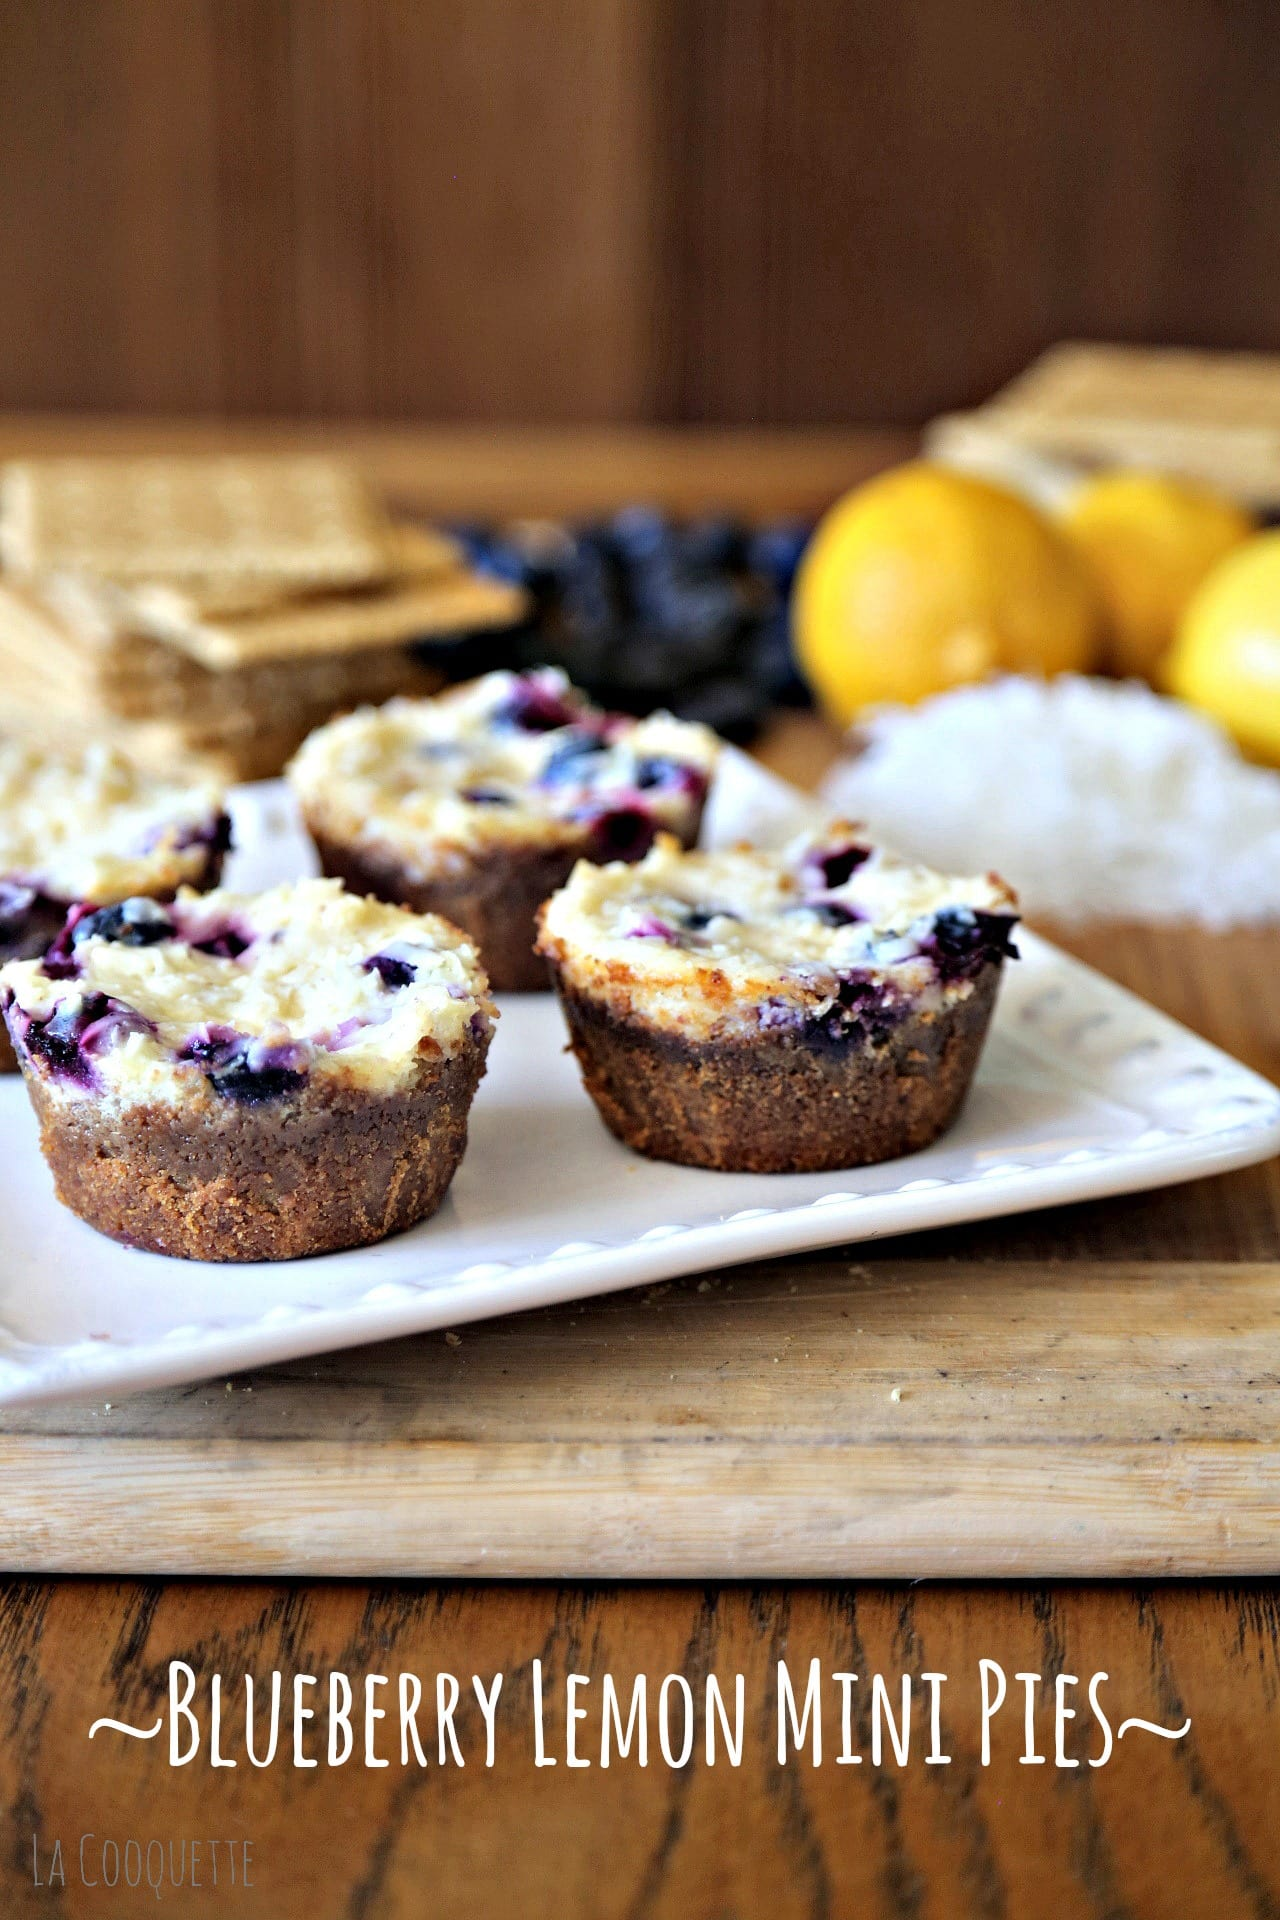 Blueberry Lemon Mini Pies